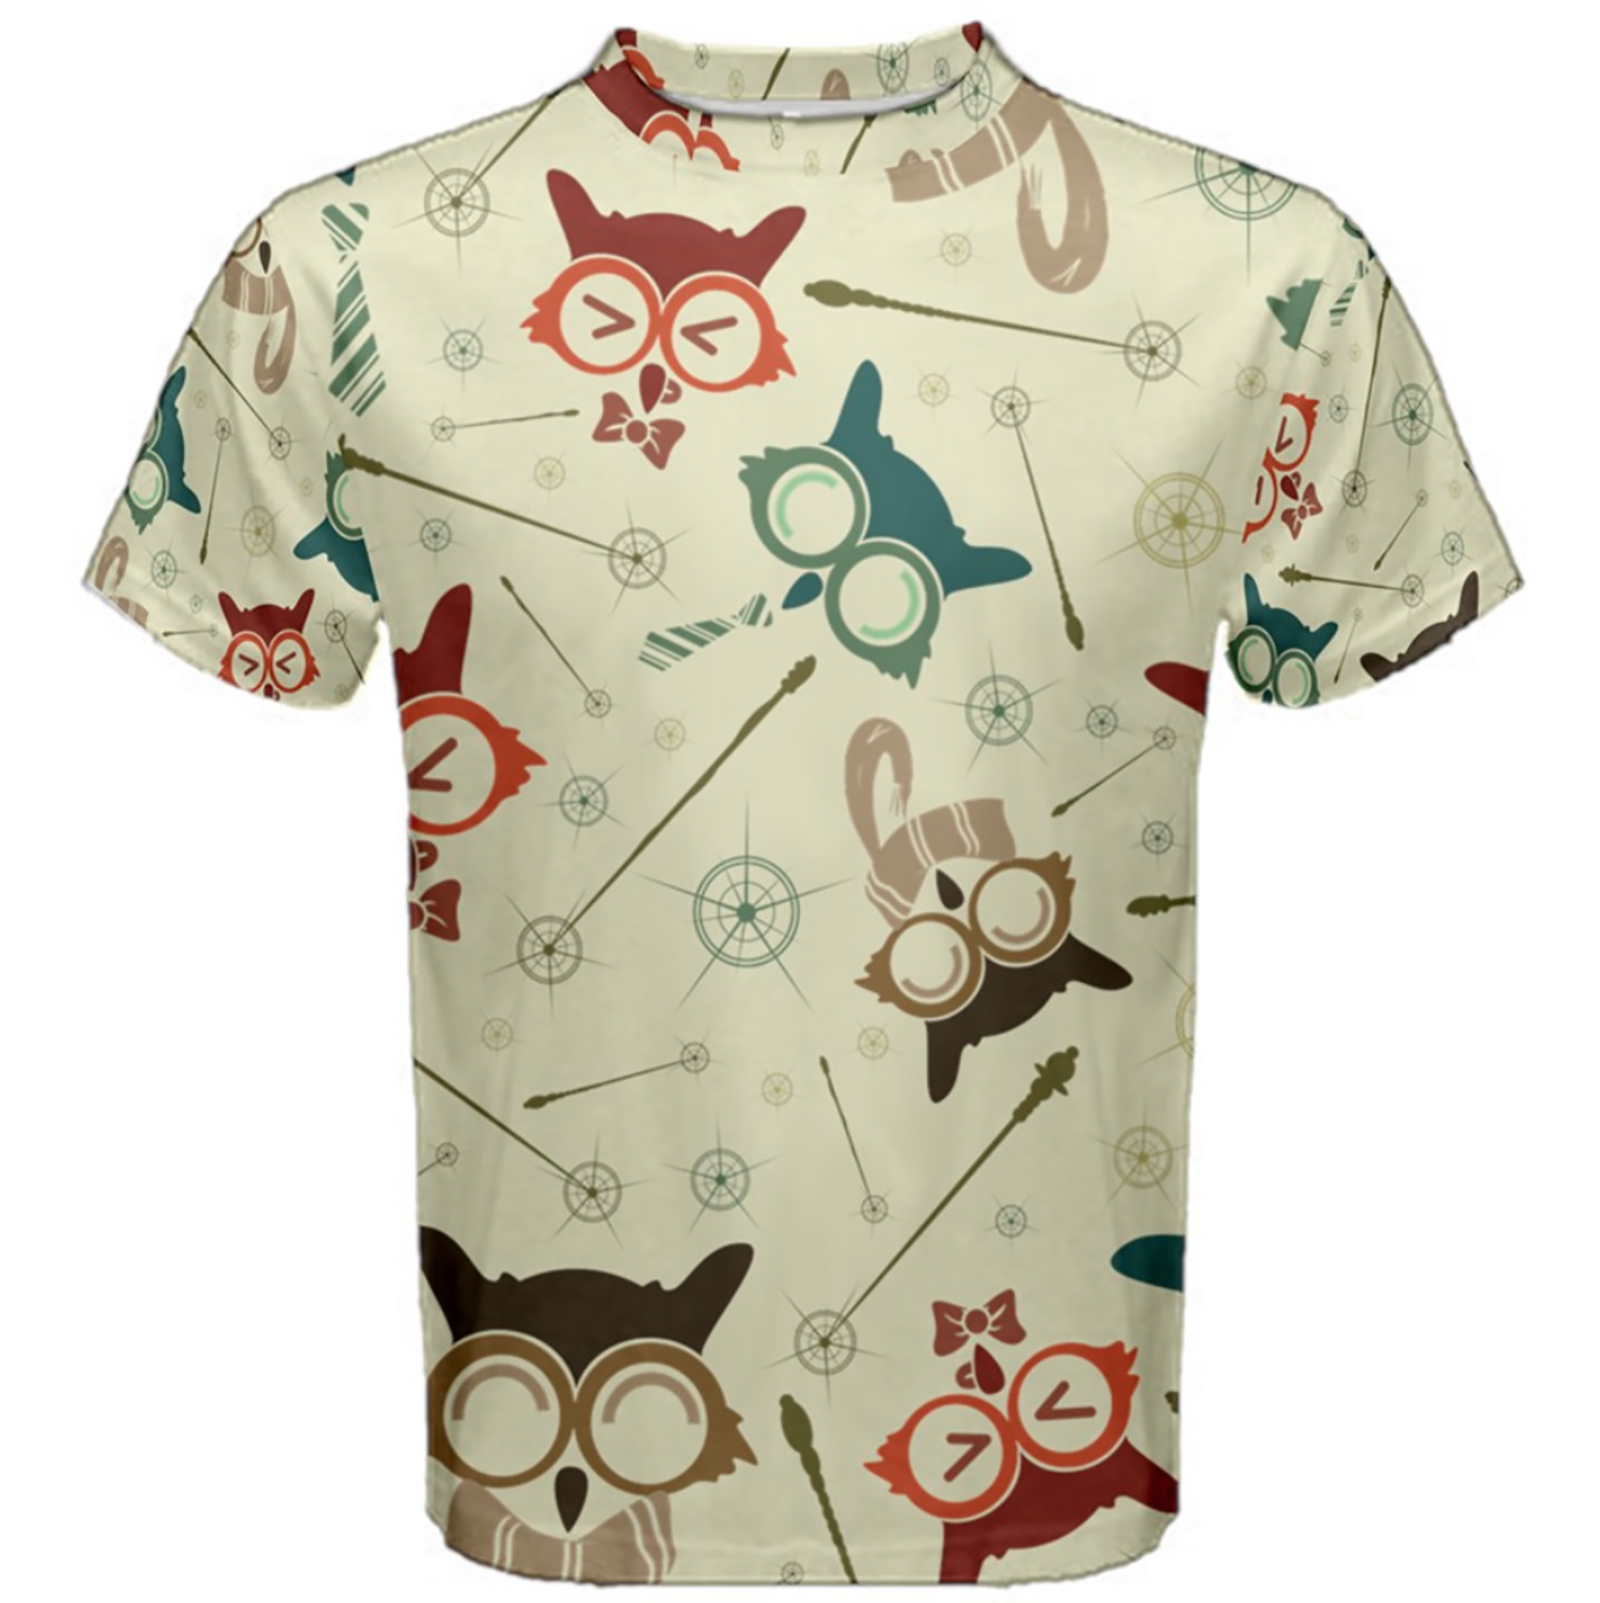 Vintage Emoji Owl Cotton Tee (Patterned)